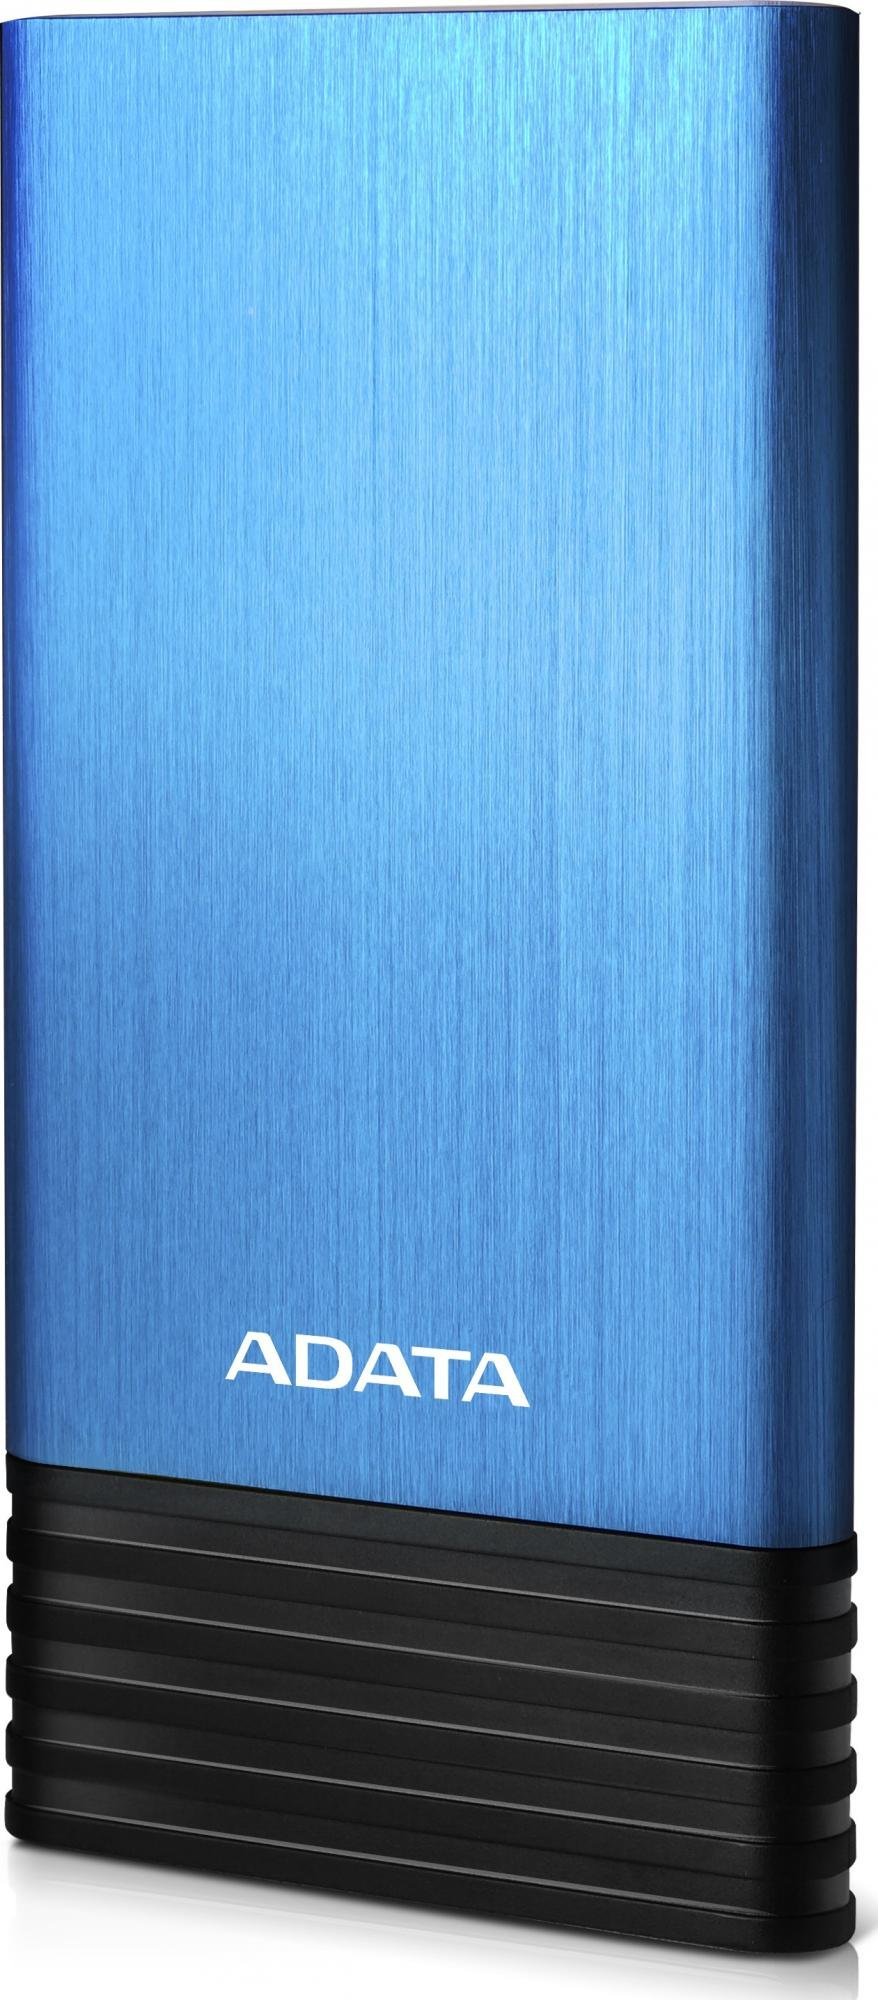 ADATA X7000 Power Bank 7000mAh modrá